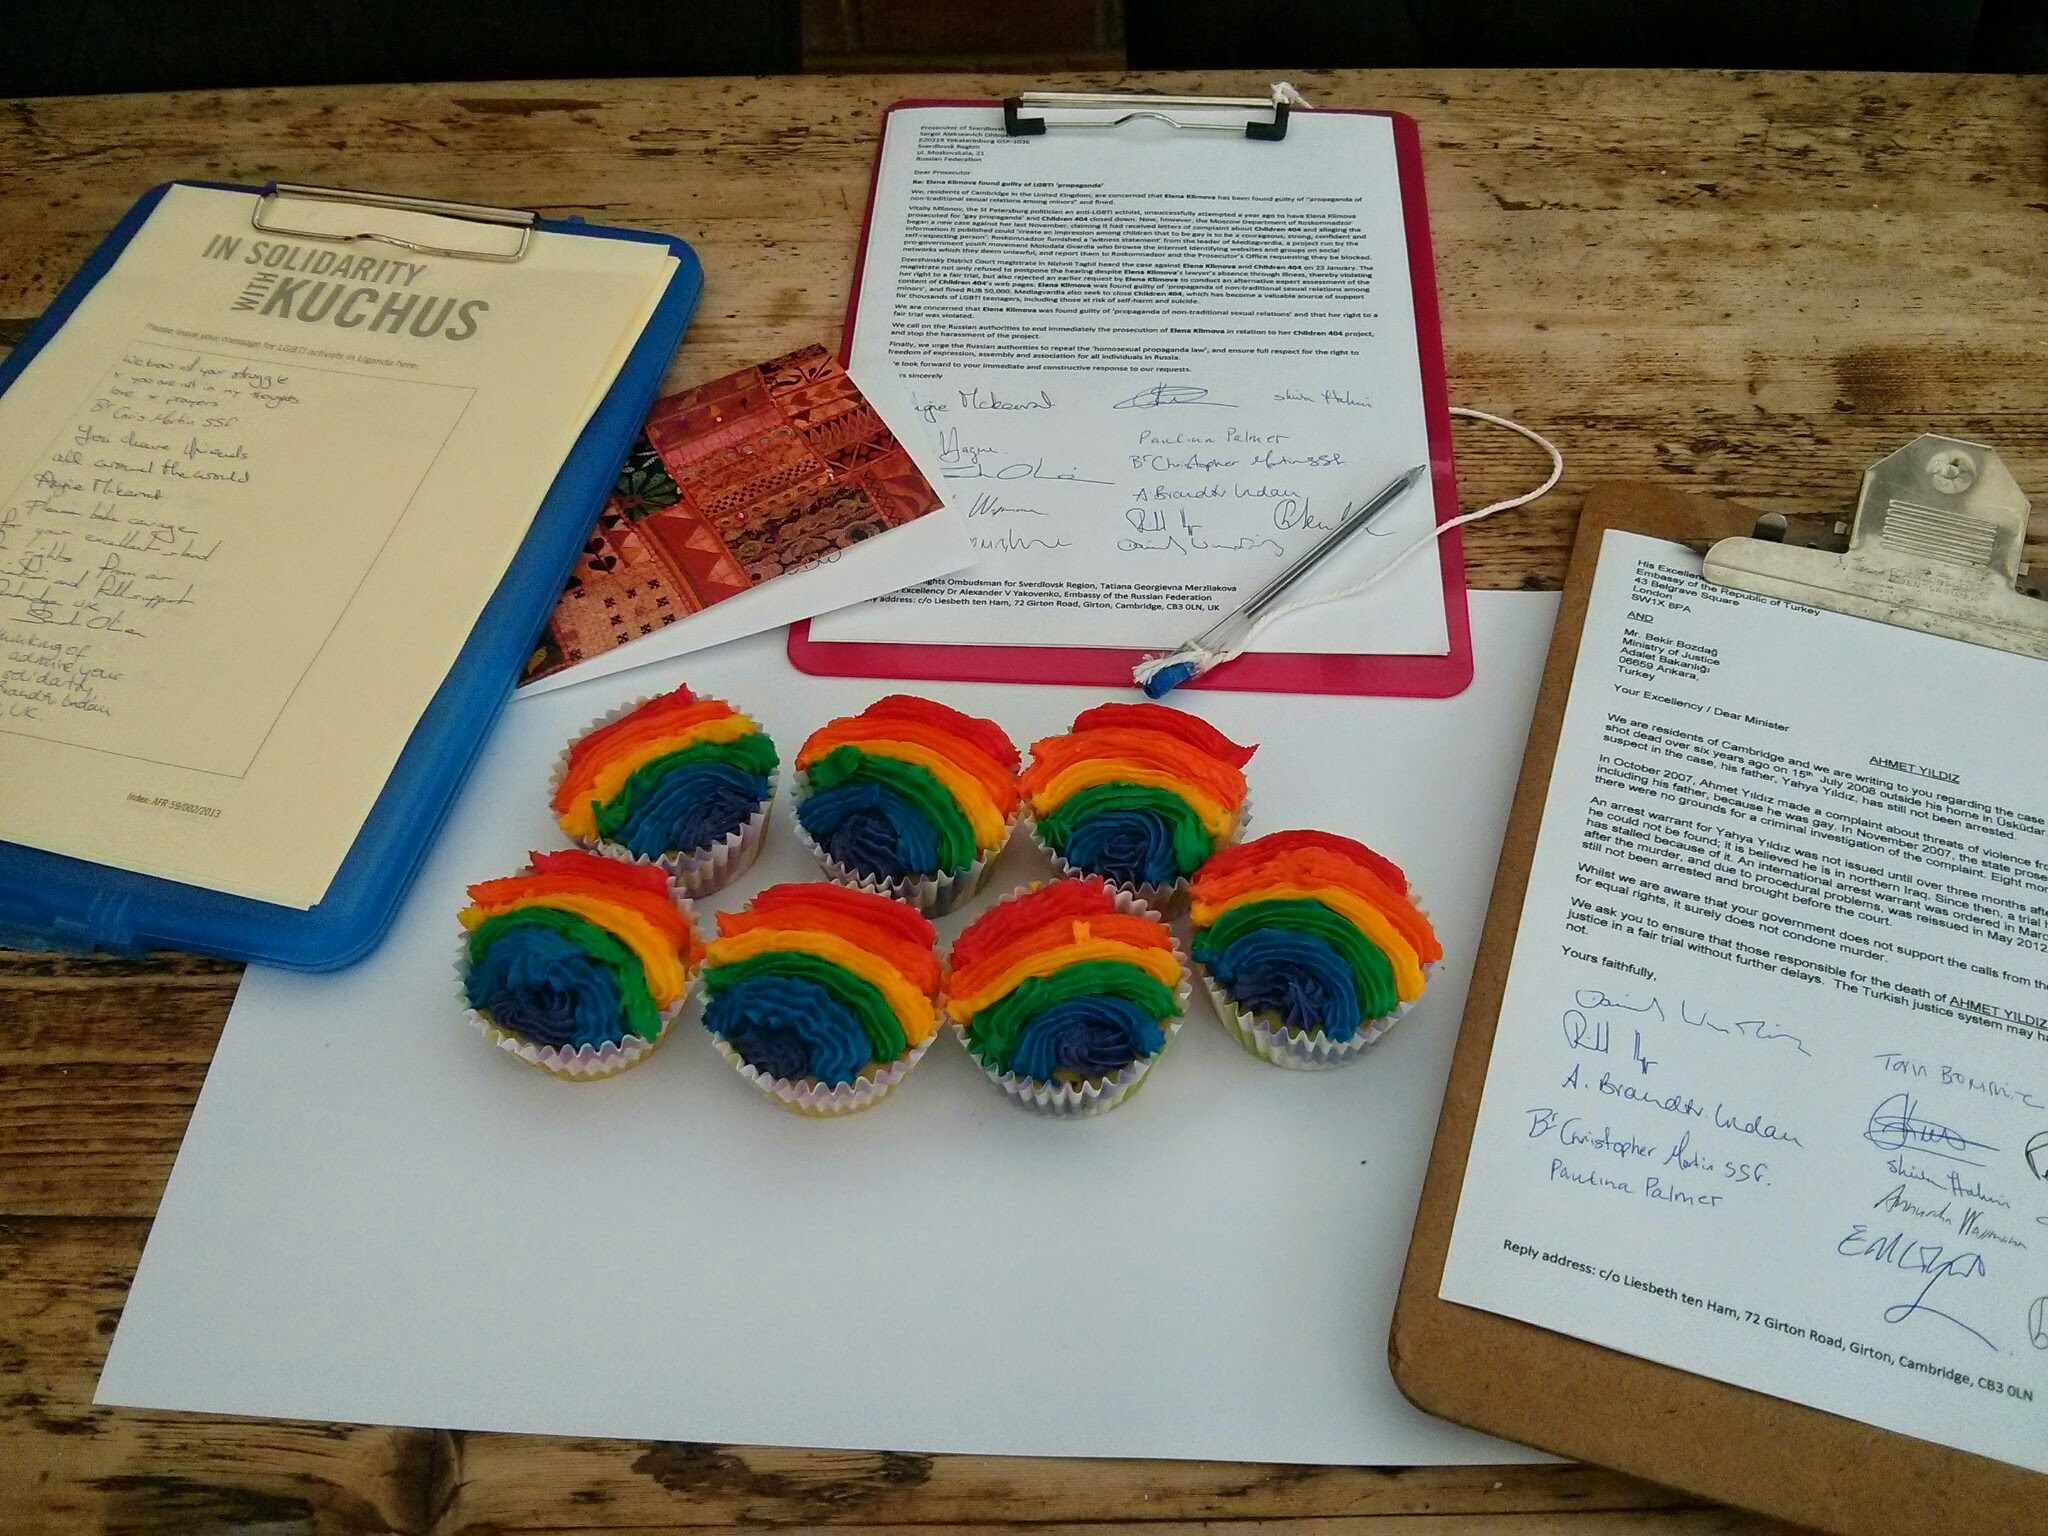 Signing letters and petitions at meetings, and raising funds through a cake sale